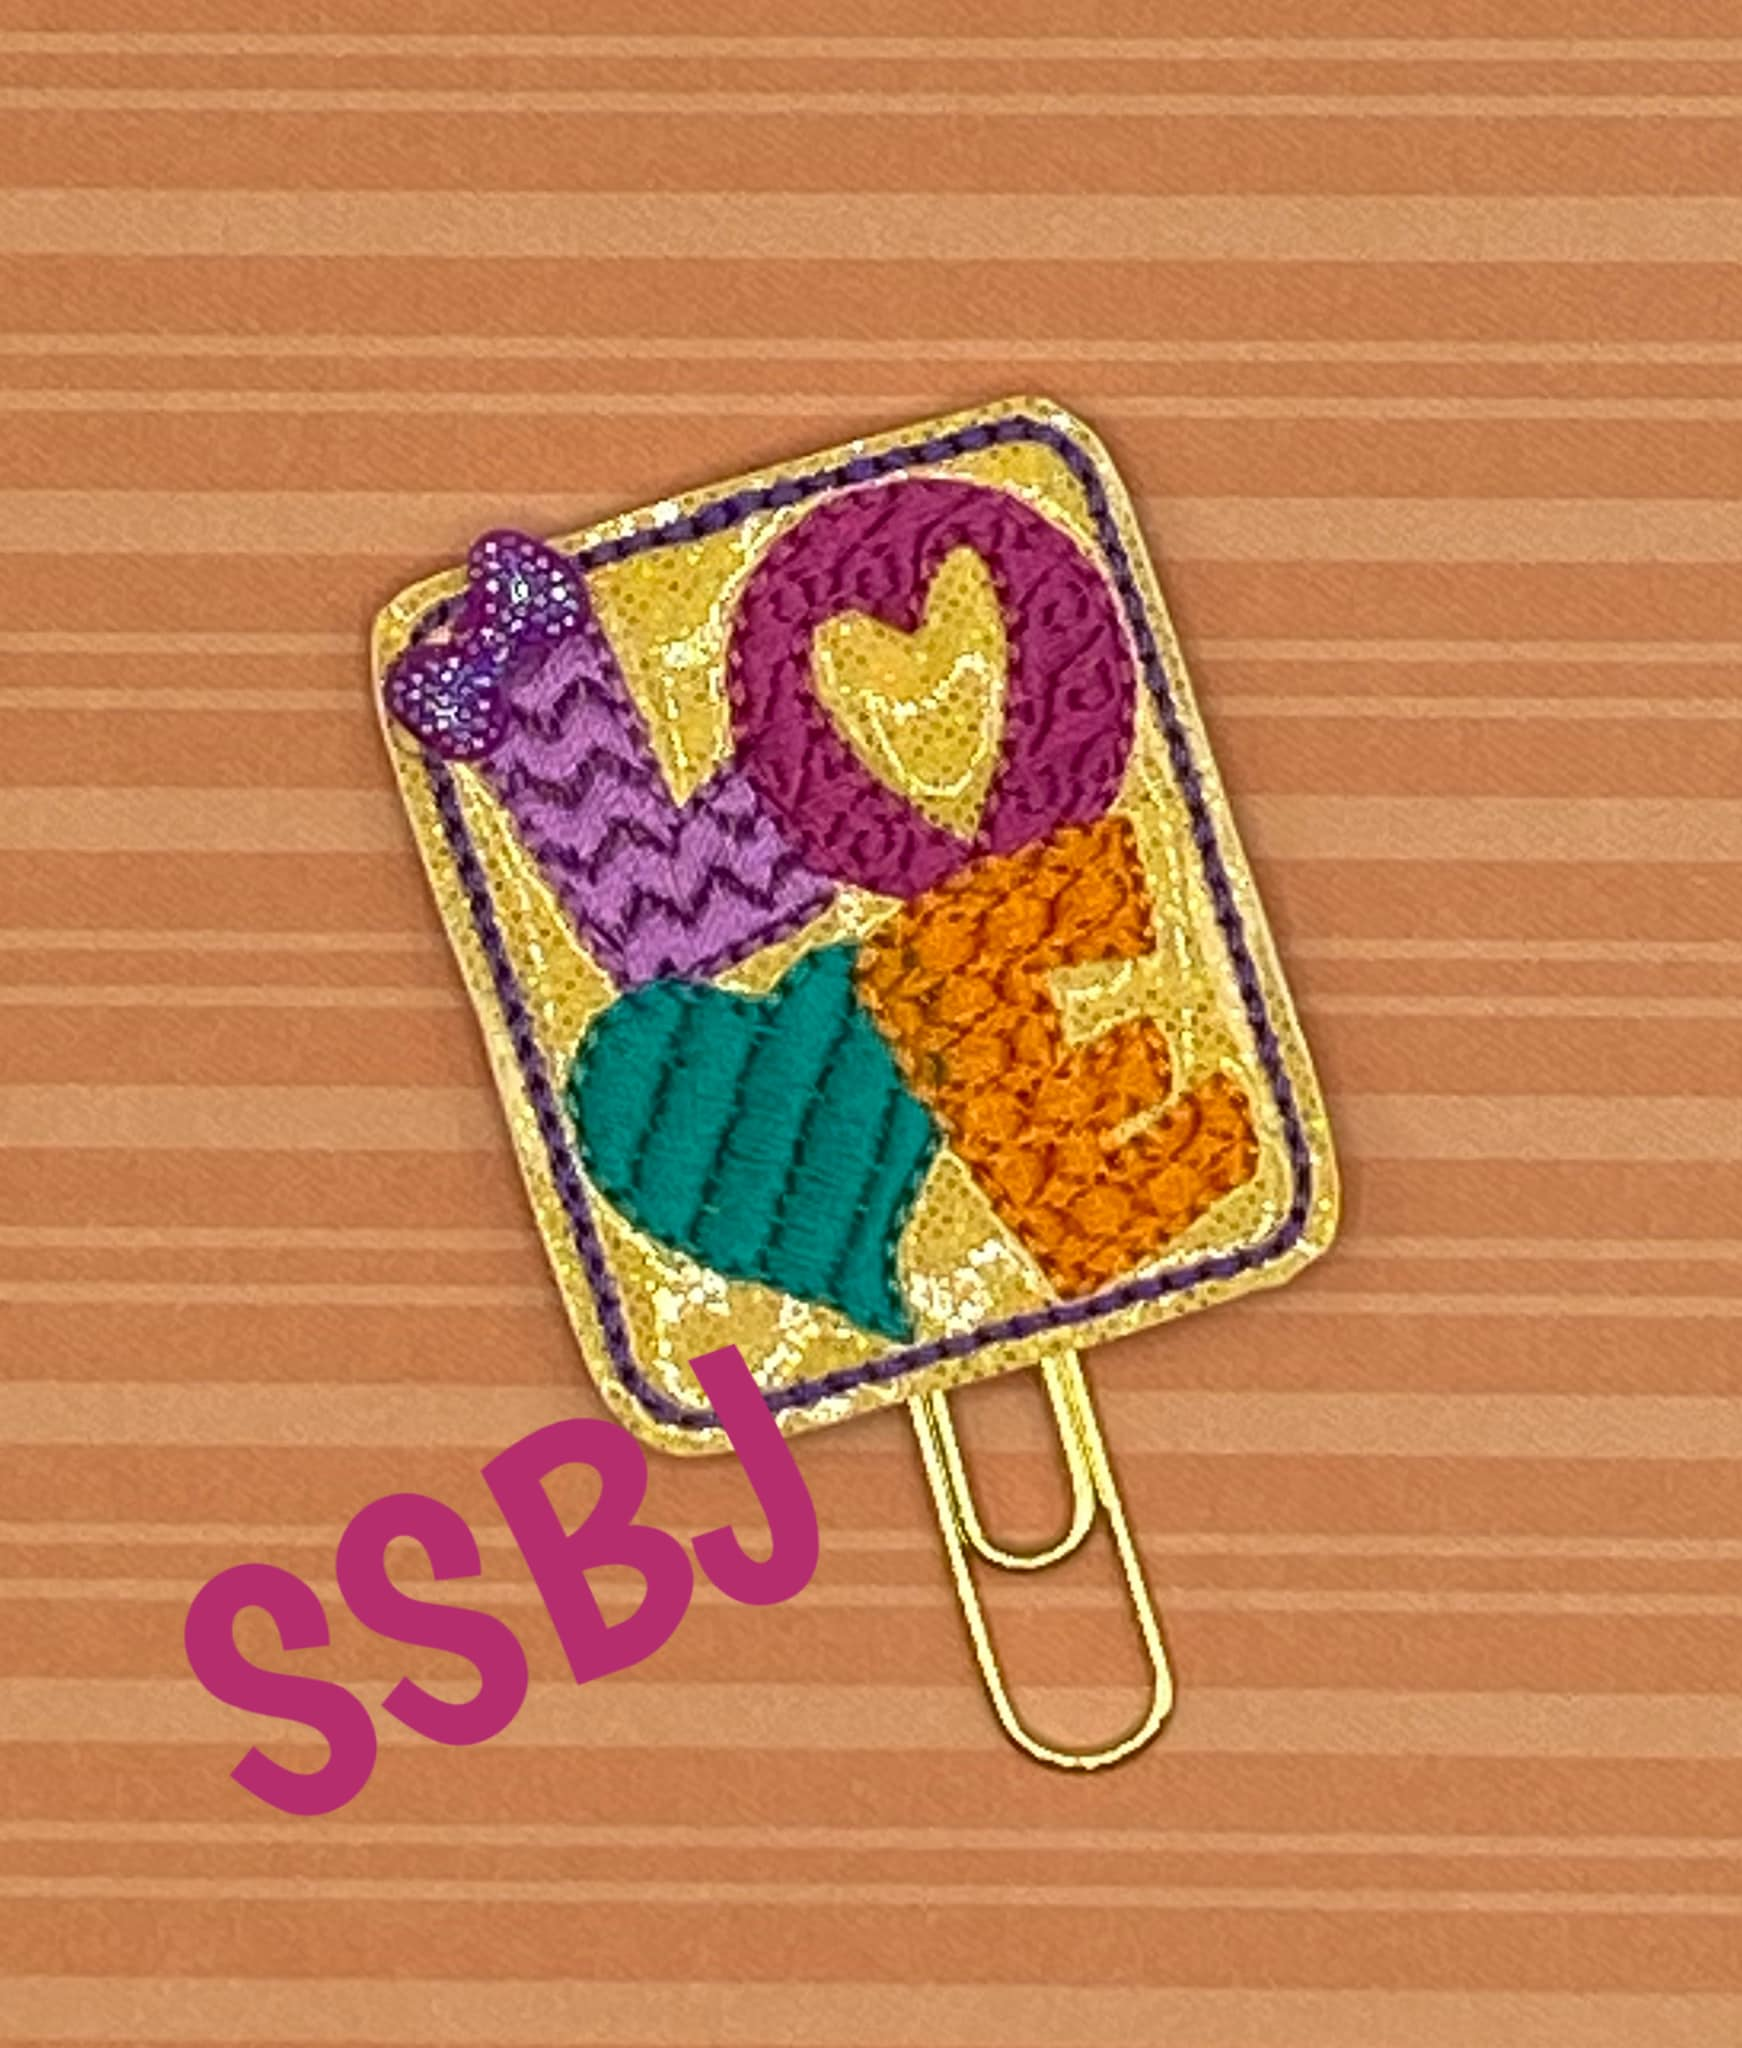 SSBJ Modern Love Embroidery File